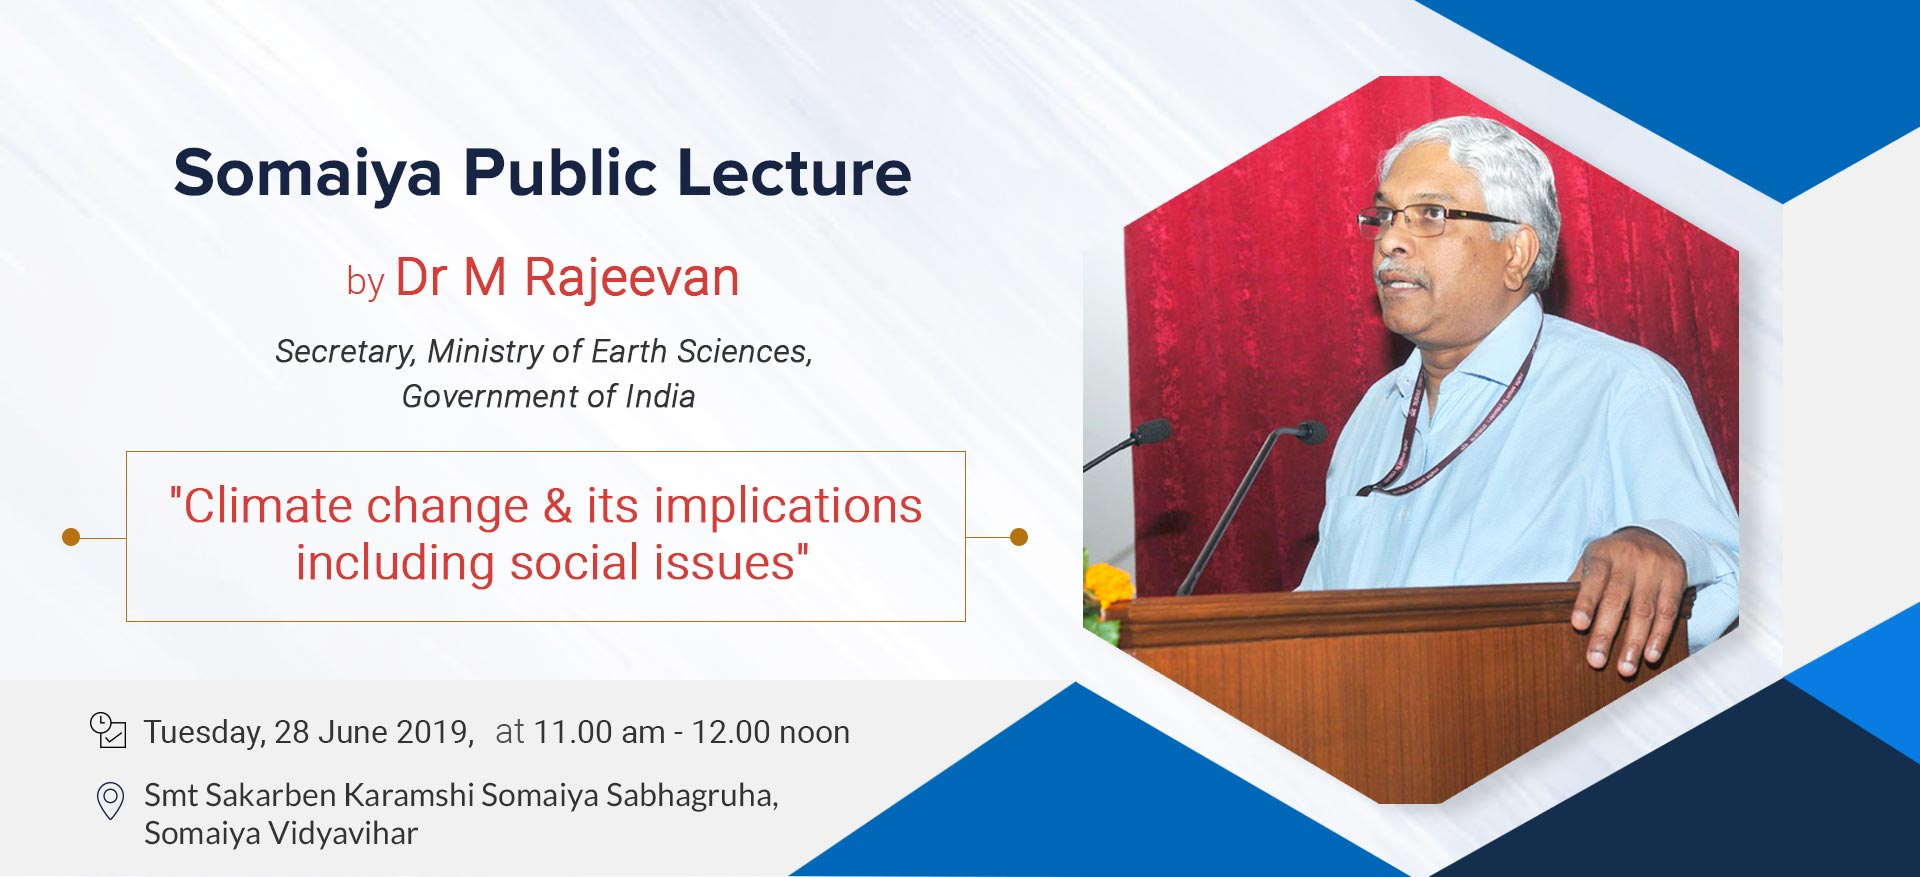 Somaiya Public Lecture on Climate Change & its implications including social issues